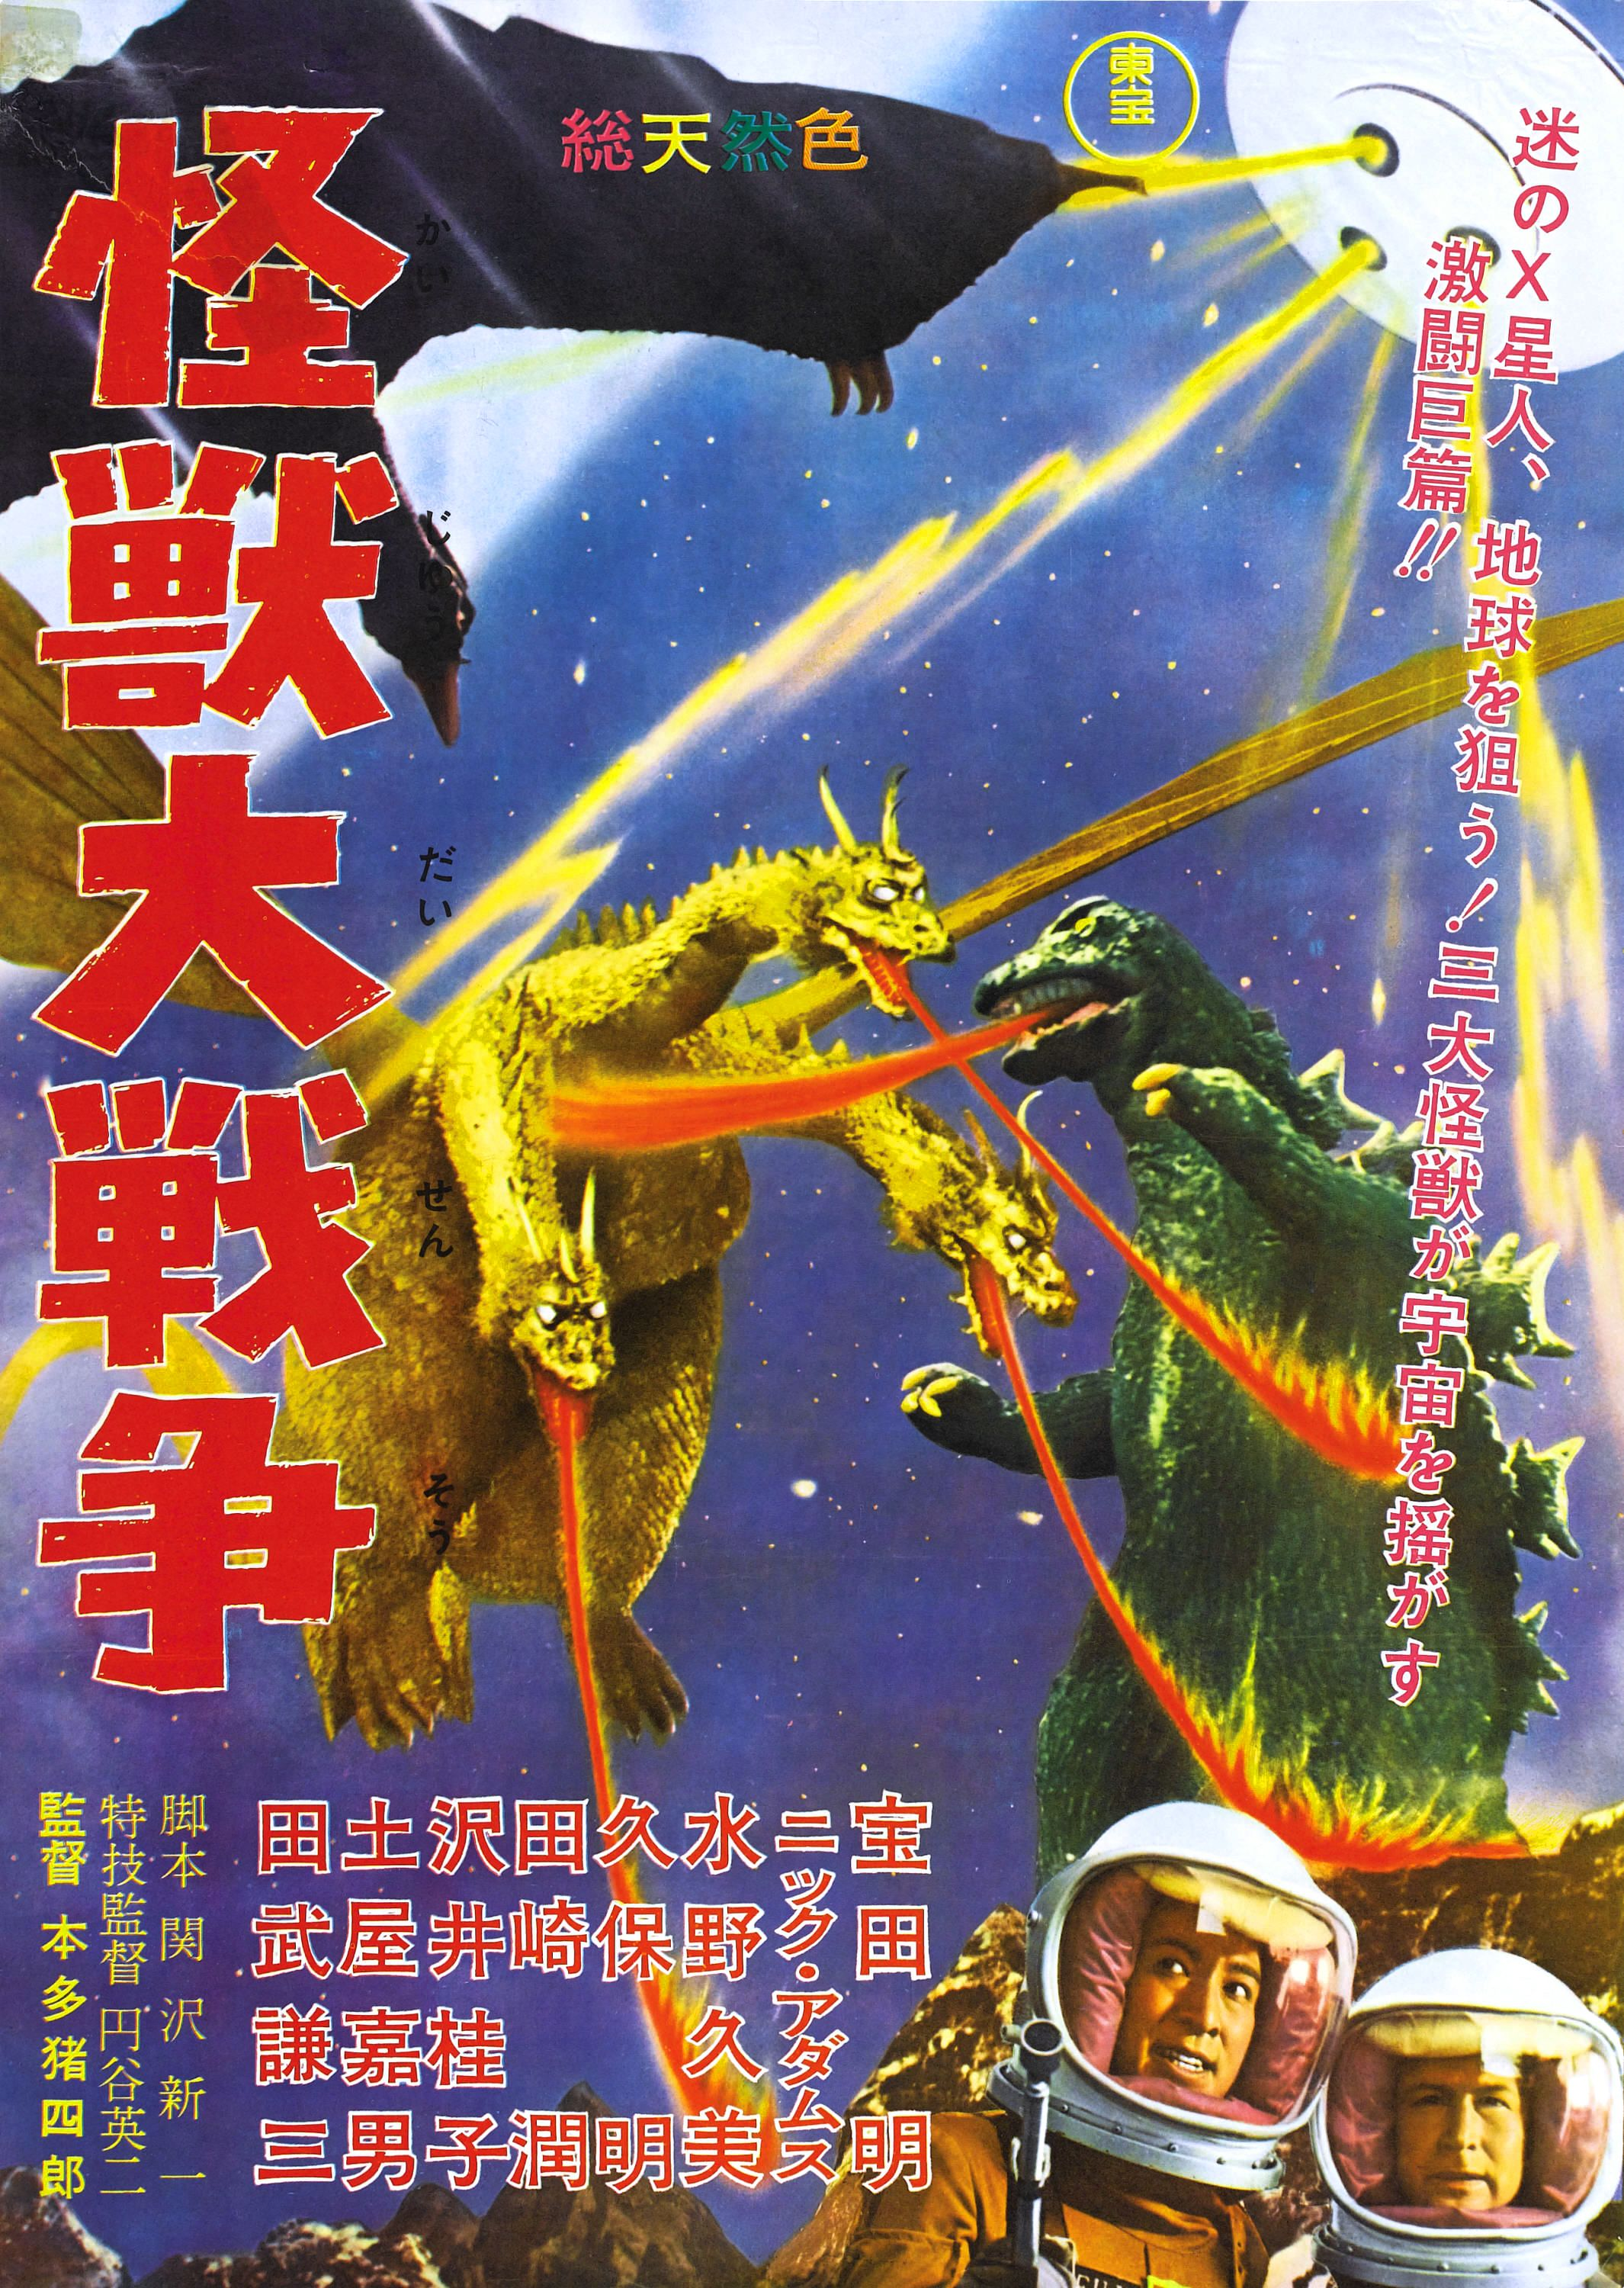 invasion_of_the_astro-monster_poster_1965_01.jpg